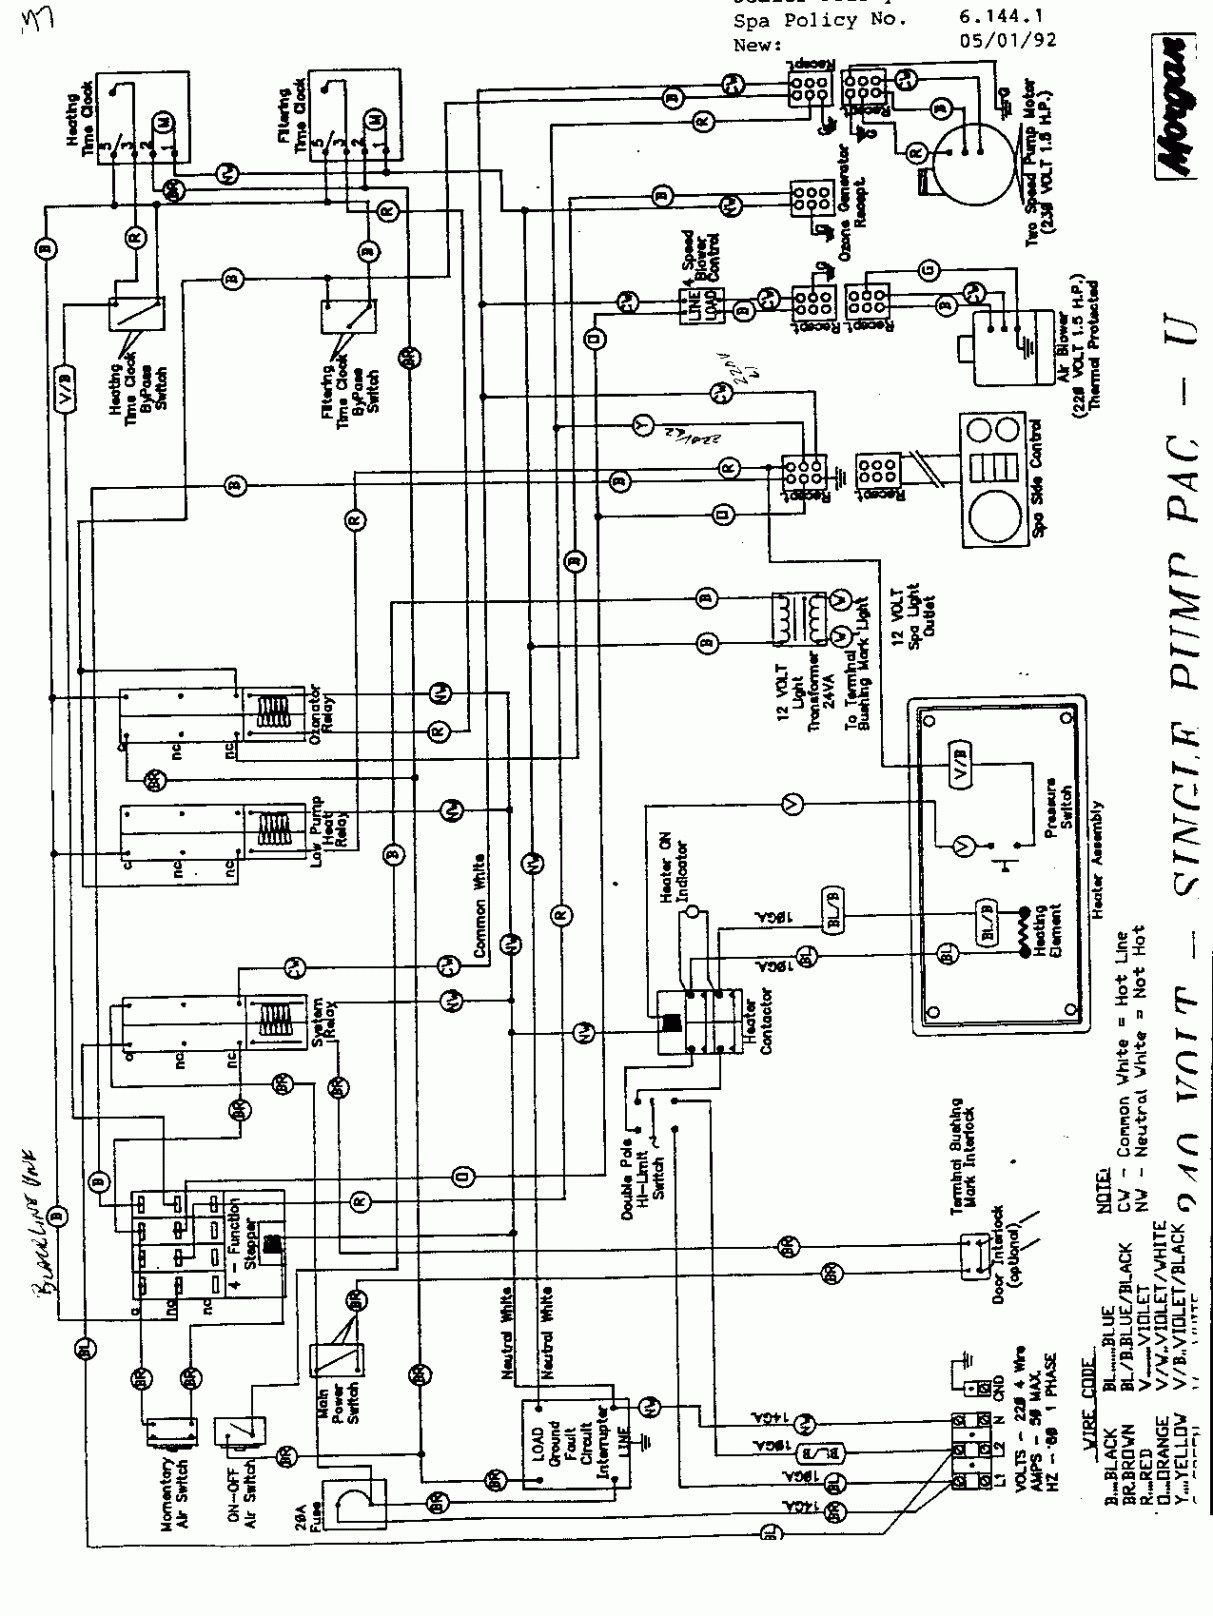 Cal Spa Wiring Diagram Apktodownload